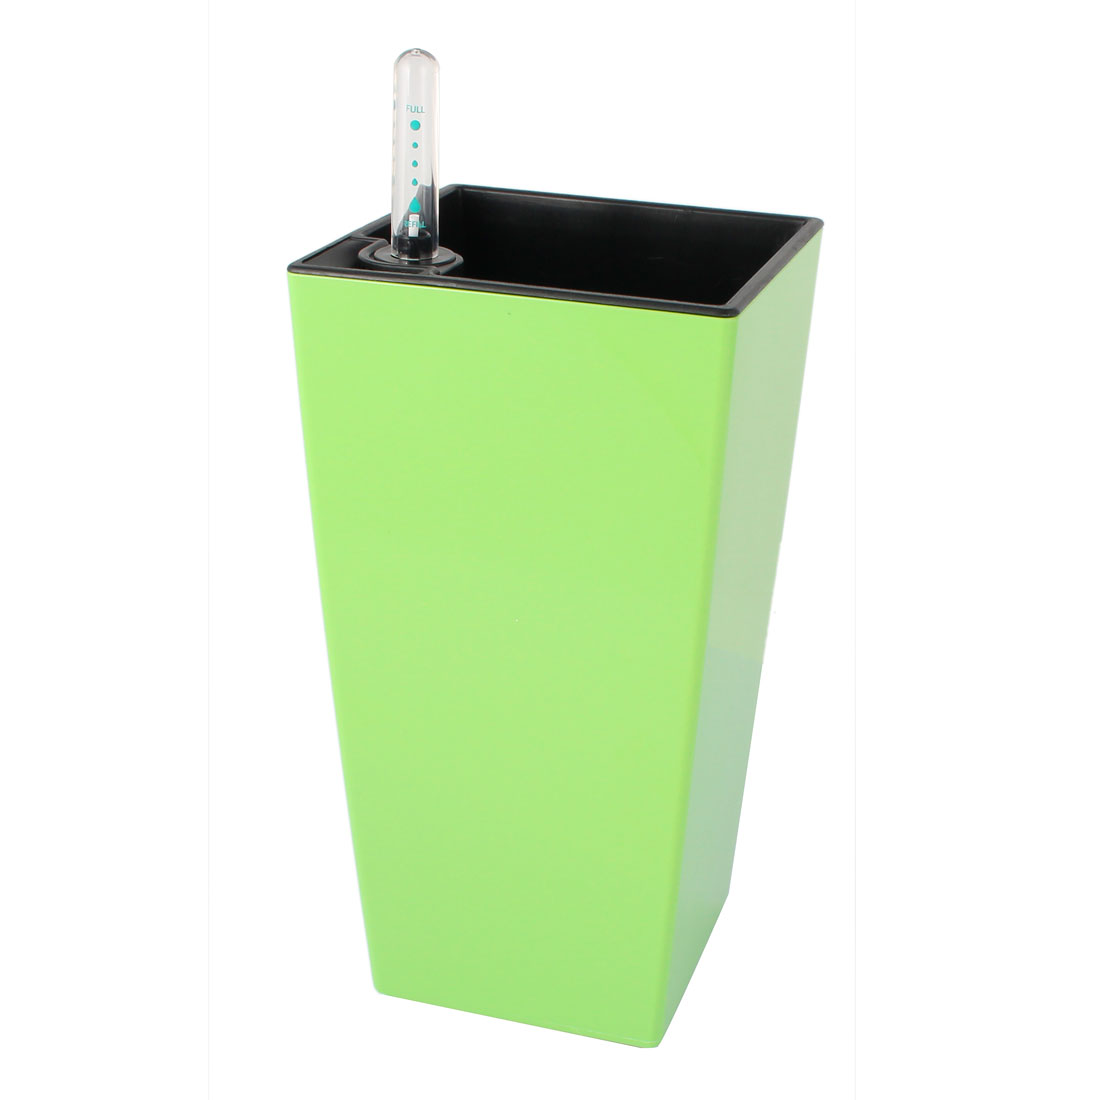 Plastic Rectangle Shape Self Watering Planter Green w Water Level Indicator